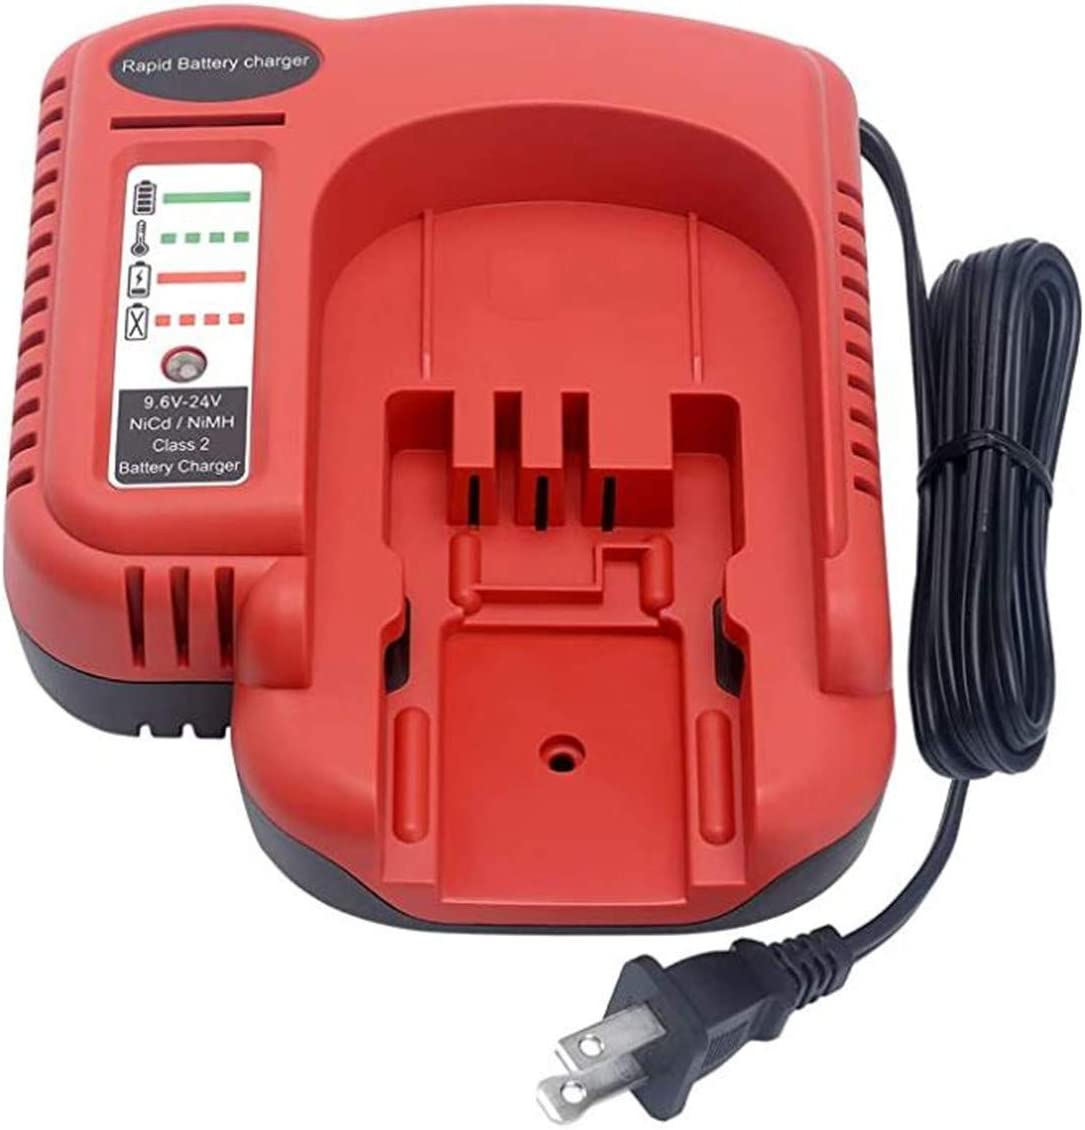 LALAFO Battery Charger Replace for Black and Decker 18V 14.4V 12V 9.6V 24V NiCad & NiMh Battery FS12B HPB12 A14F A14 HPB14 FSB18 HPB18 FS18FL HPB18-OPE A18 A18E HPB24 HPB96 A1714